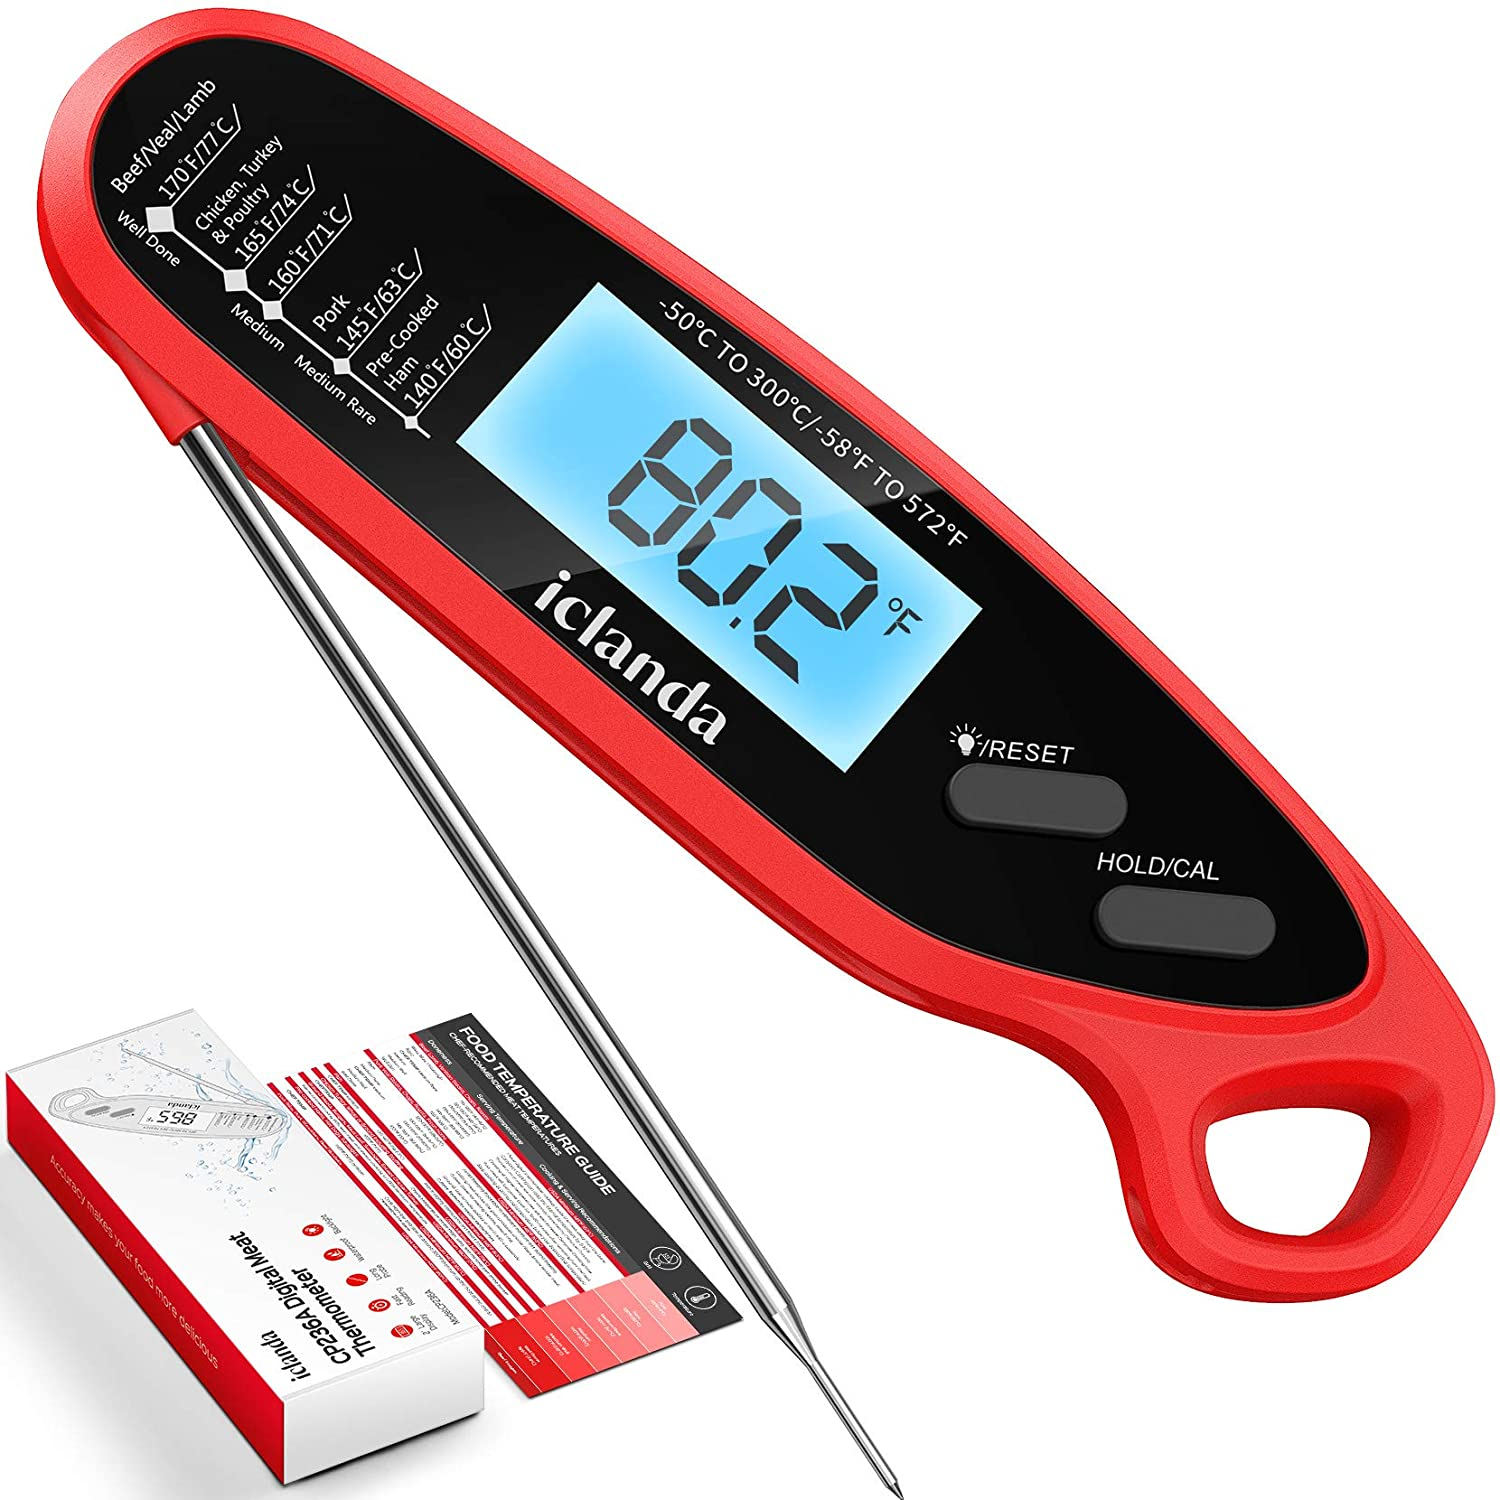 Iclanda Meat Thermometer, Digital Instant Read Cooking Thermometer with Backlight, Magnet, Calibration, Reset, Waterproof Digital Food Thermometer for Kitchen, Deep Fry, BBQ, Grill, Candy